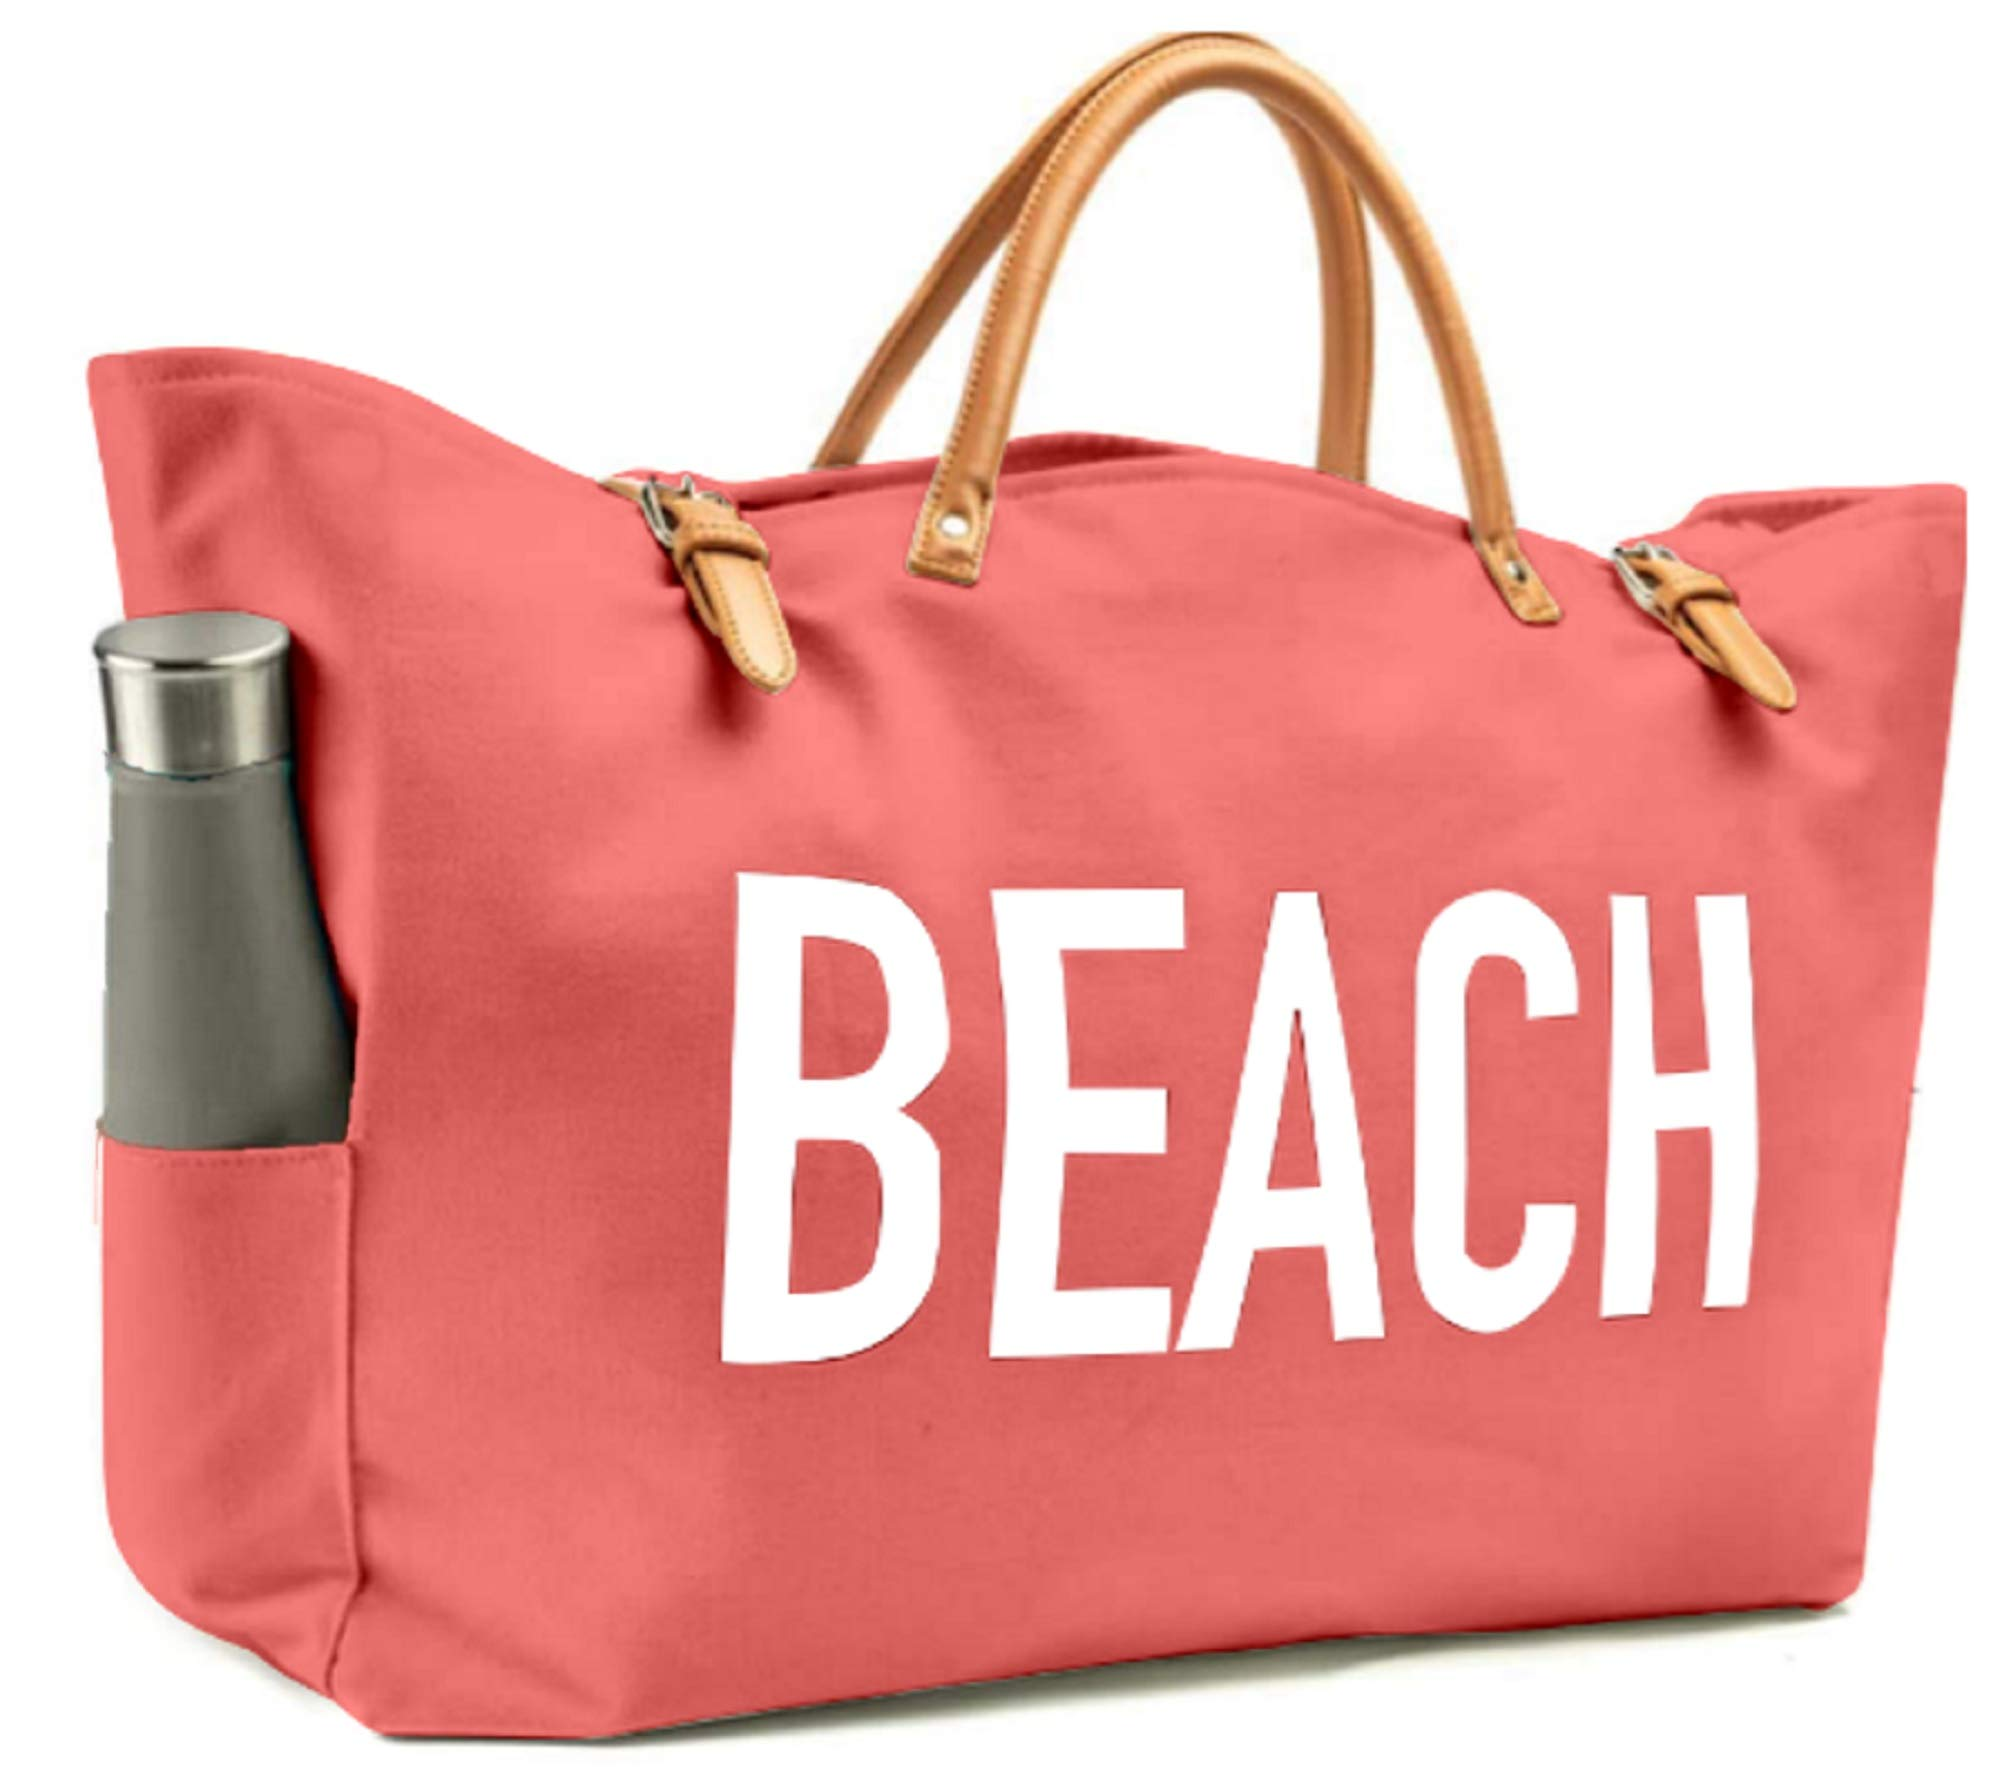 KEHO Large Canvas Beach Bag Travel Tote (Coral), Waterproof Lining, 2 Drink Holders, Pockets, FREE Phone Case